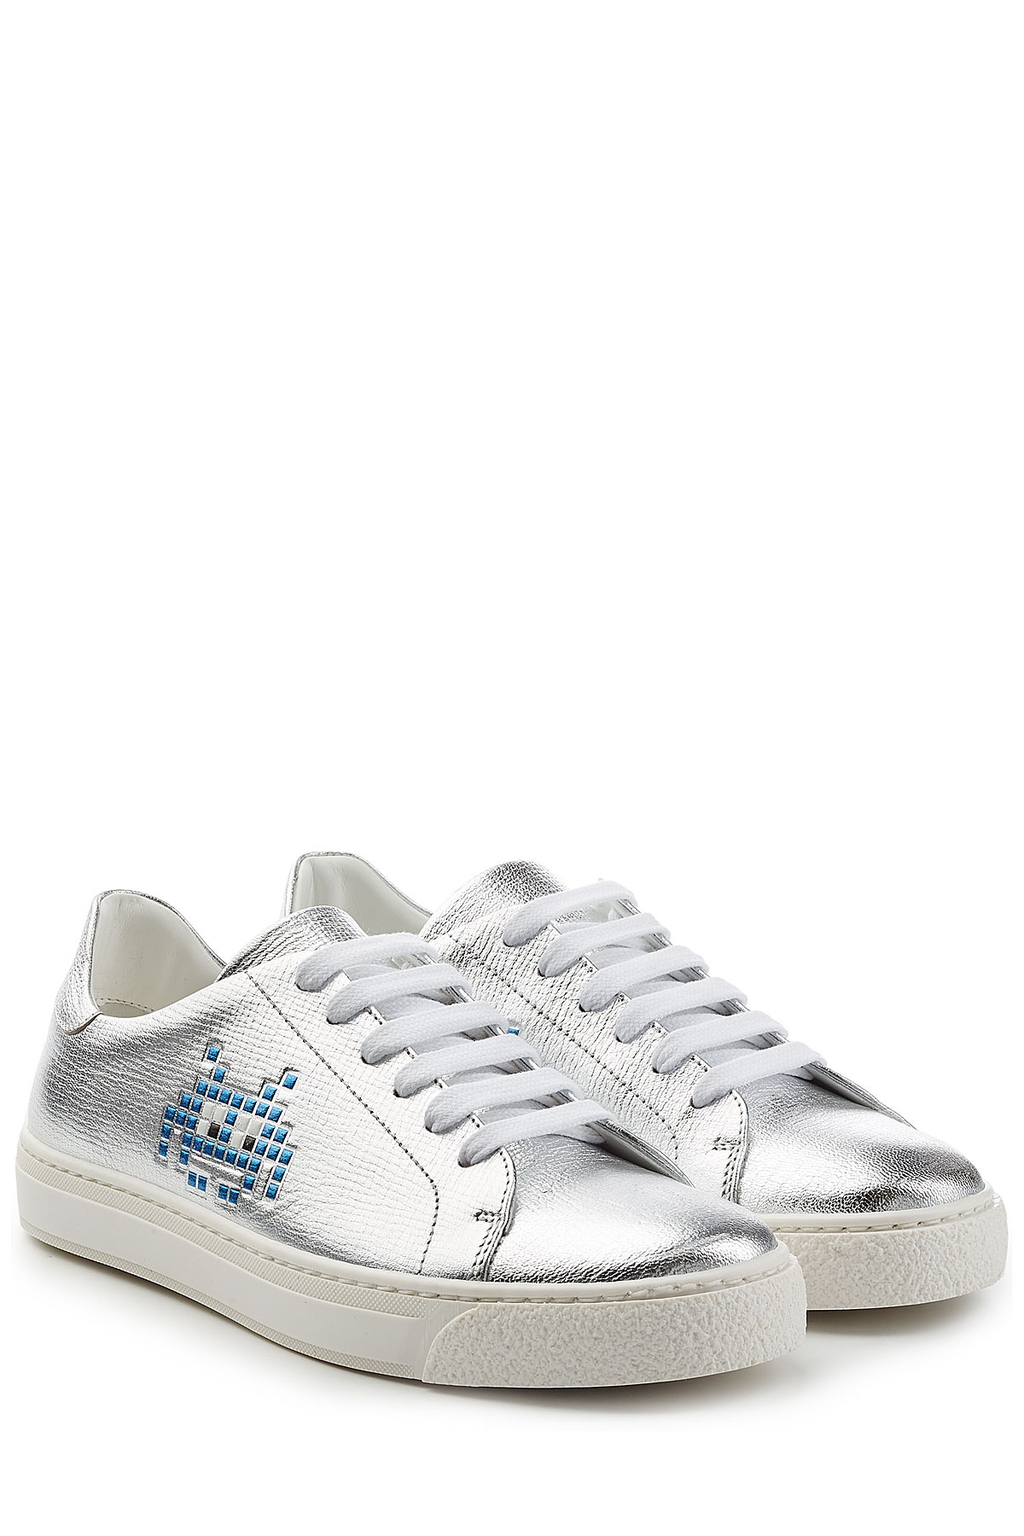 Space Invader Metallic Leather Sneakers - predominant colour: silver; occasions: casual, activity; material: leather; heel height: flat; toe: round toe; style: trainers; finish: metallic; pattern: plain; season: s/s 2016